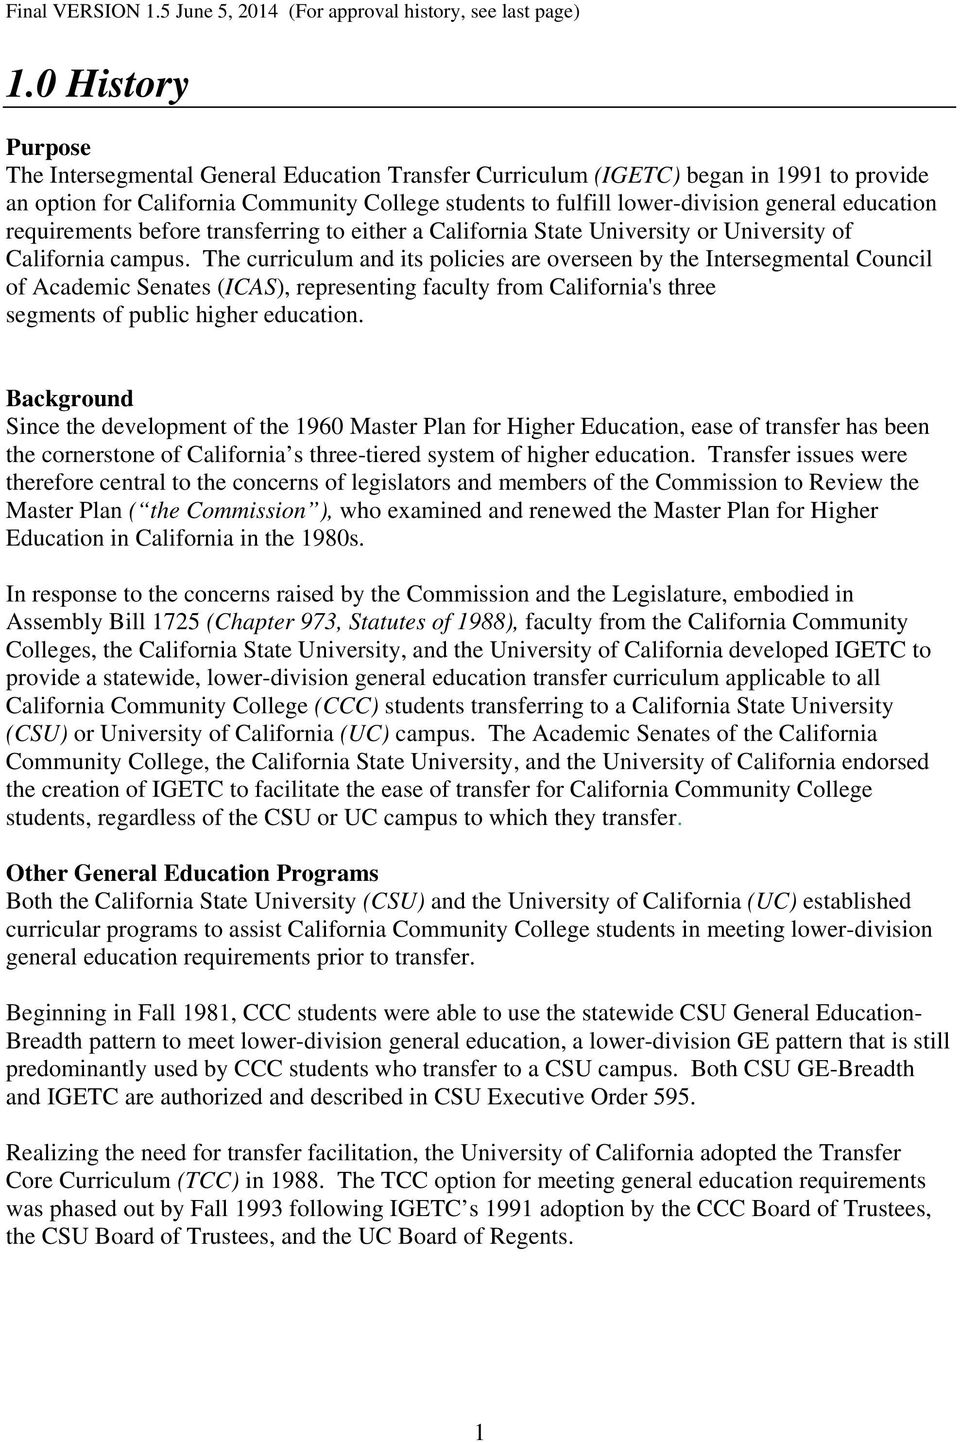 The curriculum and its policies are overseen by the Intersegmental Council of Academic Senates (ICAS), representing faculty from California's three segments of public higher education.